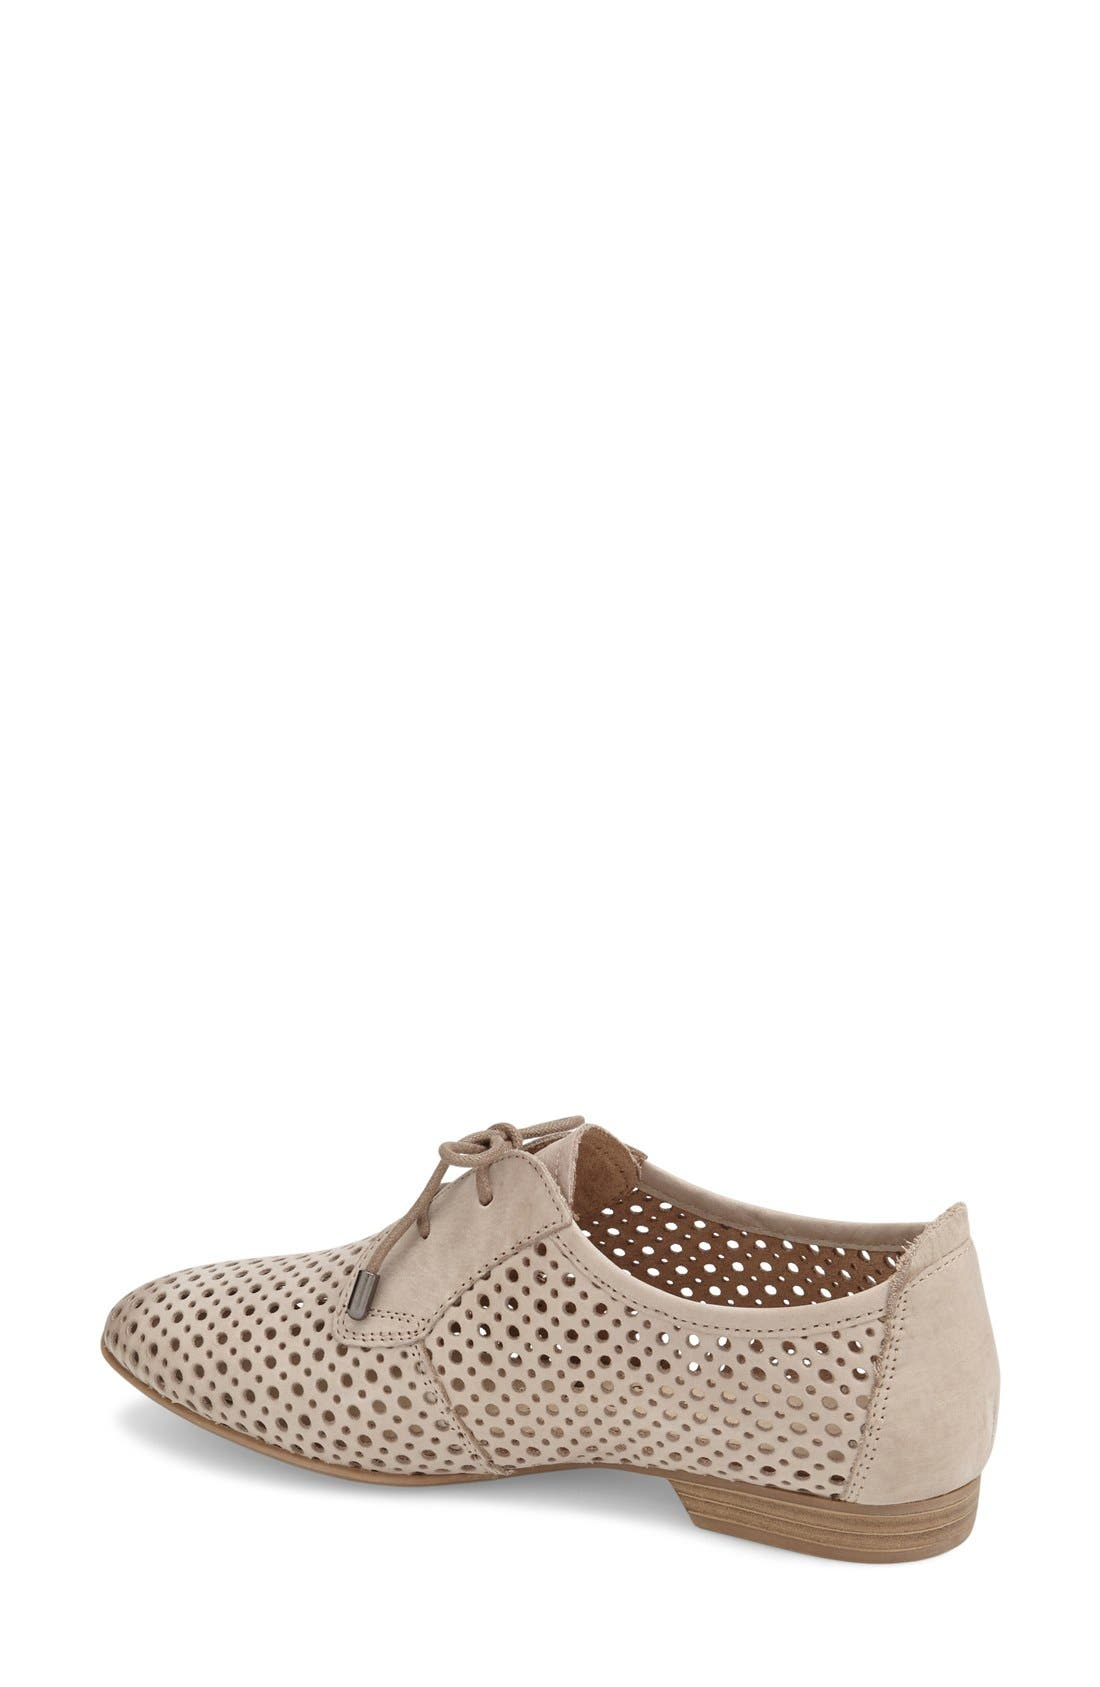 'Drene' Perforated Oxford,                             Alternate thumbnail 2, color,                             275